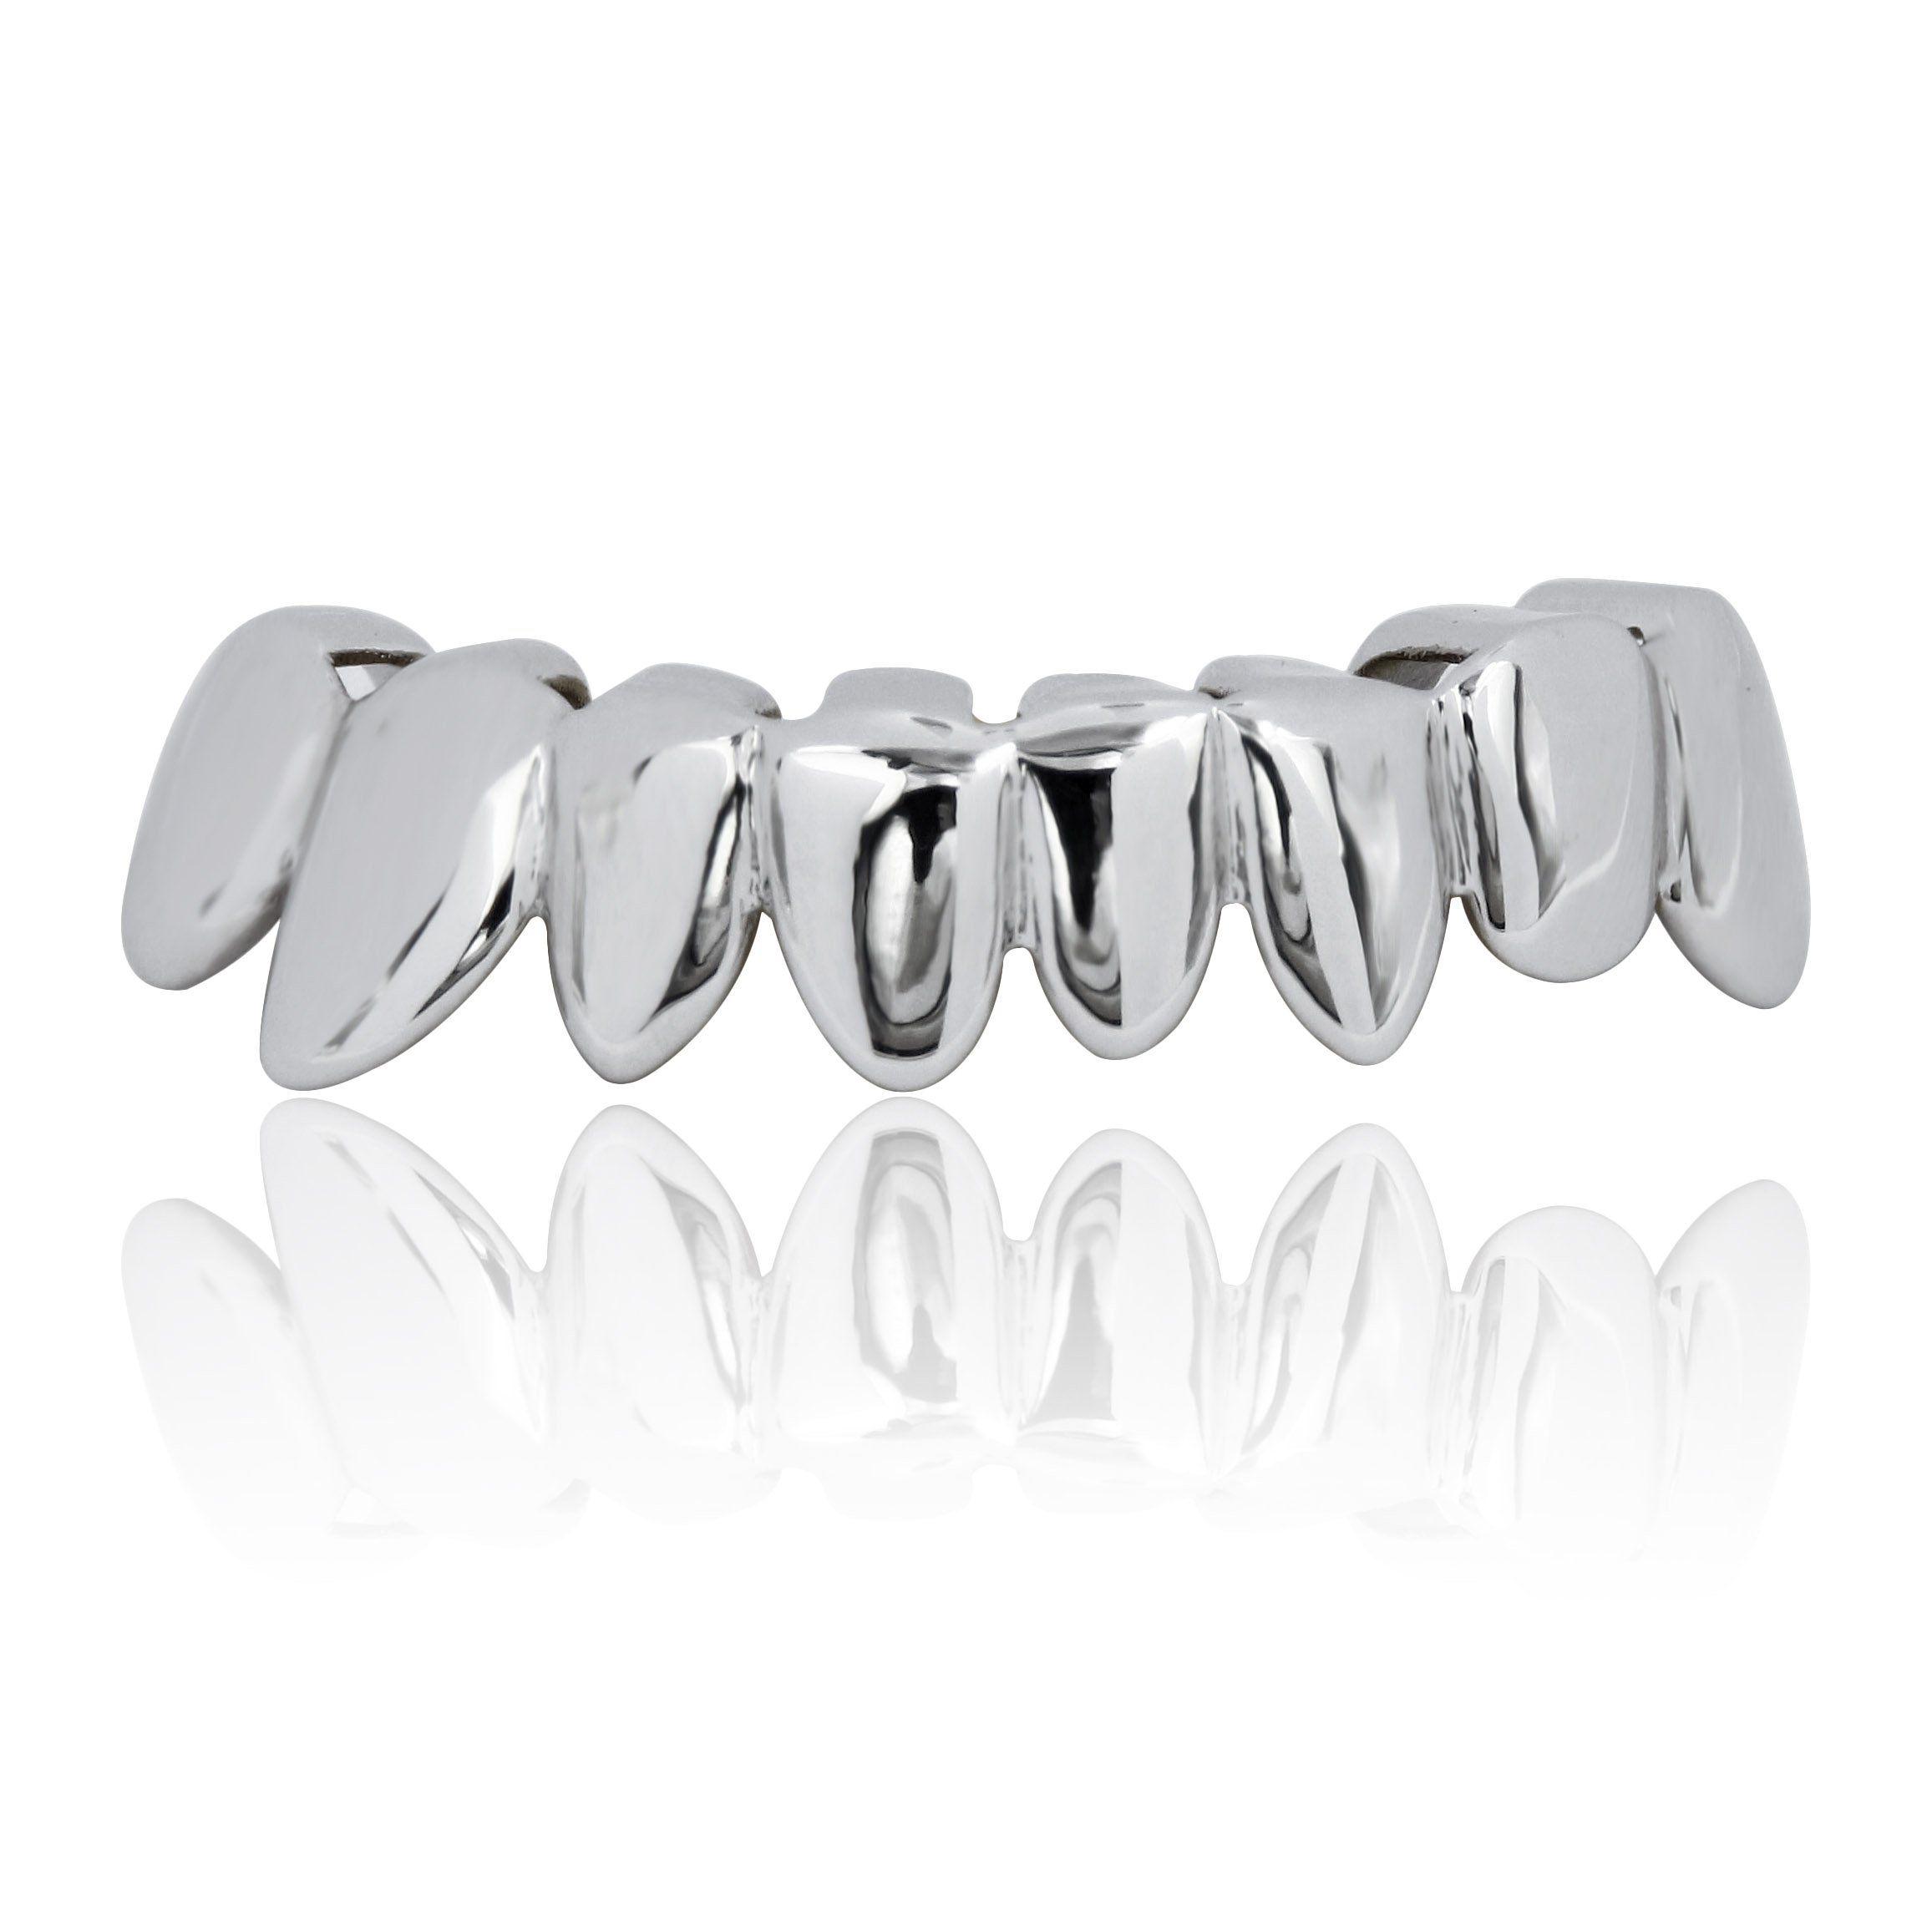 JINAO Silver Plated HQ PRE-Made Unique Hip Hop Bottom Teeth Grillz Set by JINAO